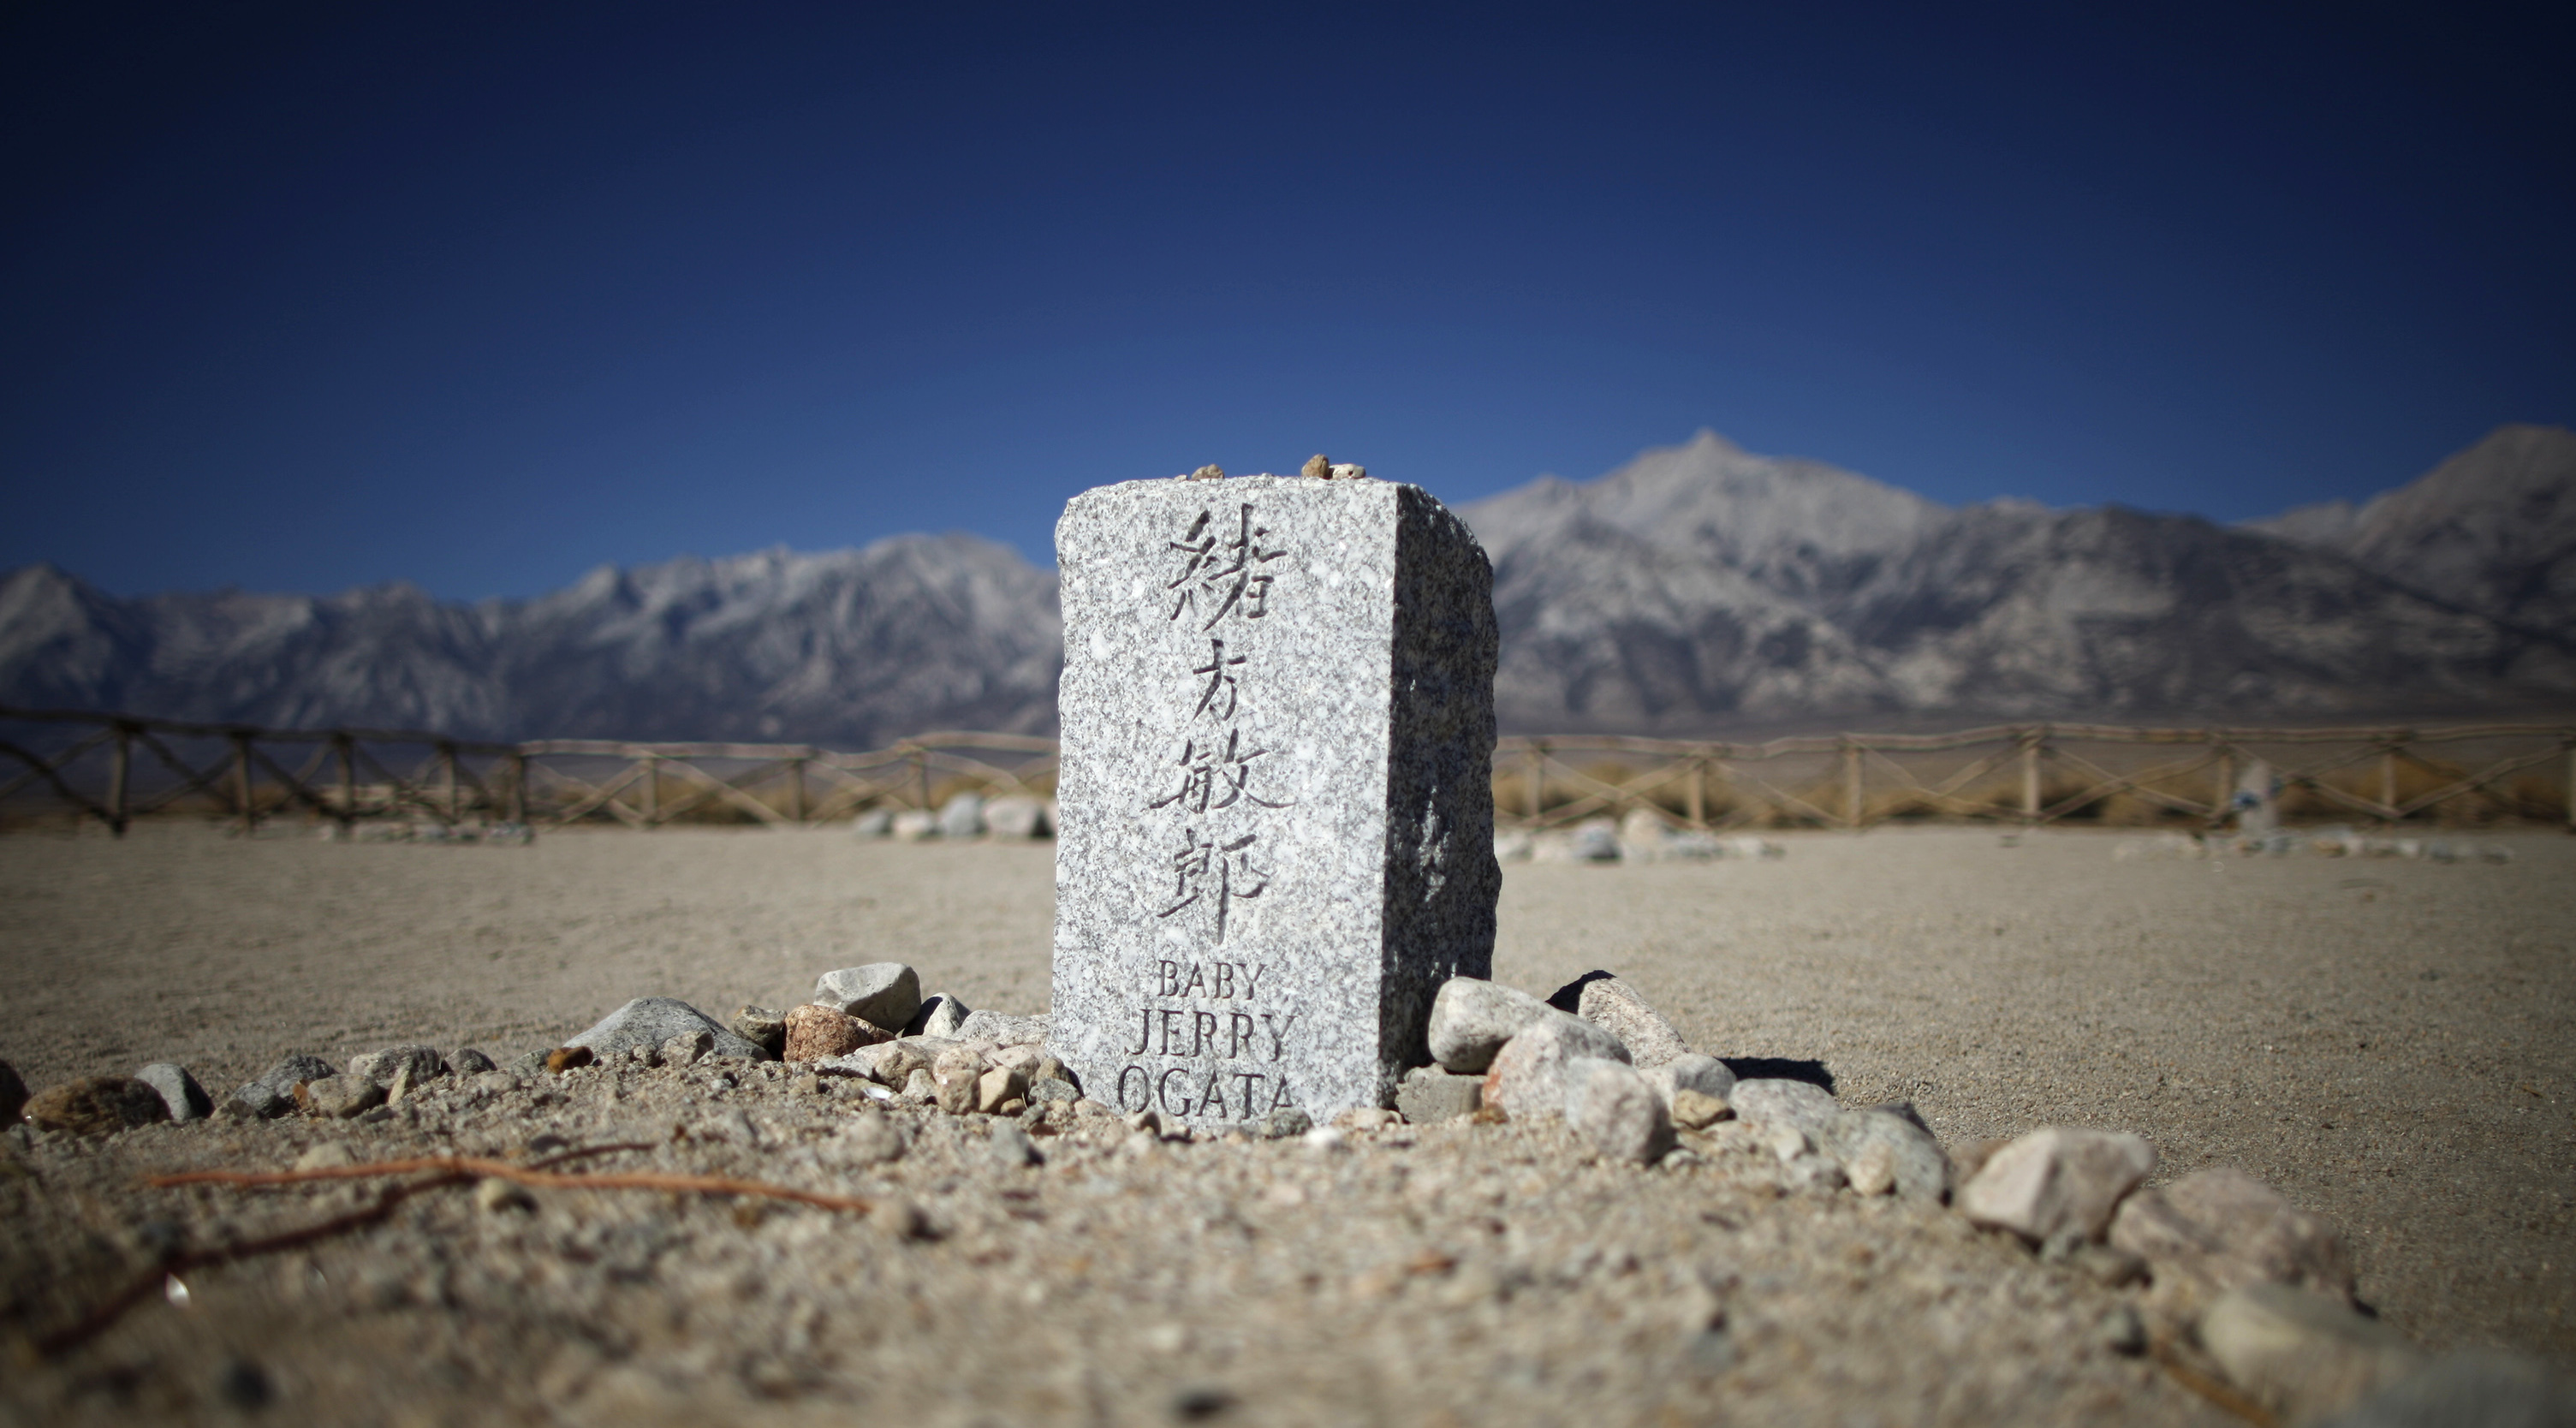 A gravestone is seen in the cemetery at Manzanar internment camp in Independence, California July 17, 2013. Nearly 120,000 people of Japanese ancestry were removed from their homes on the west coast by the U.S. Army and sent to Manzanar and nine other internment camps between March 1942 and November 1945. Two thirds of them were American citizens.